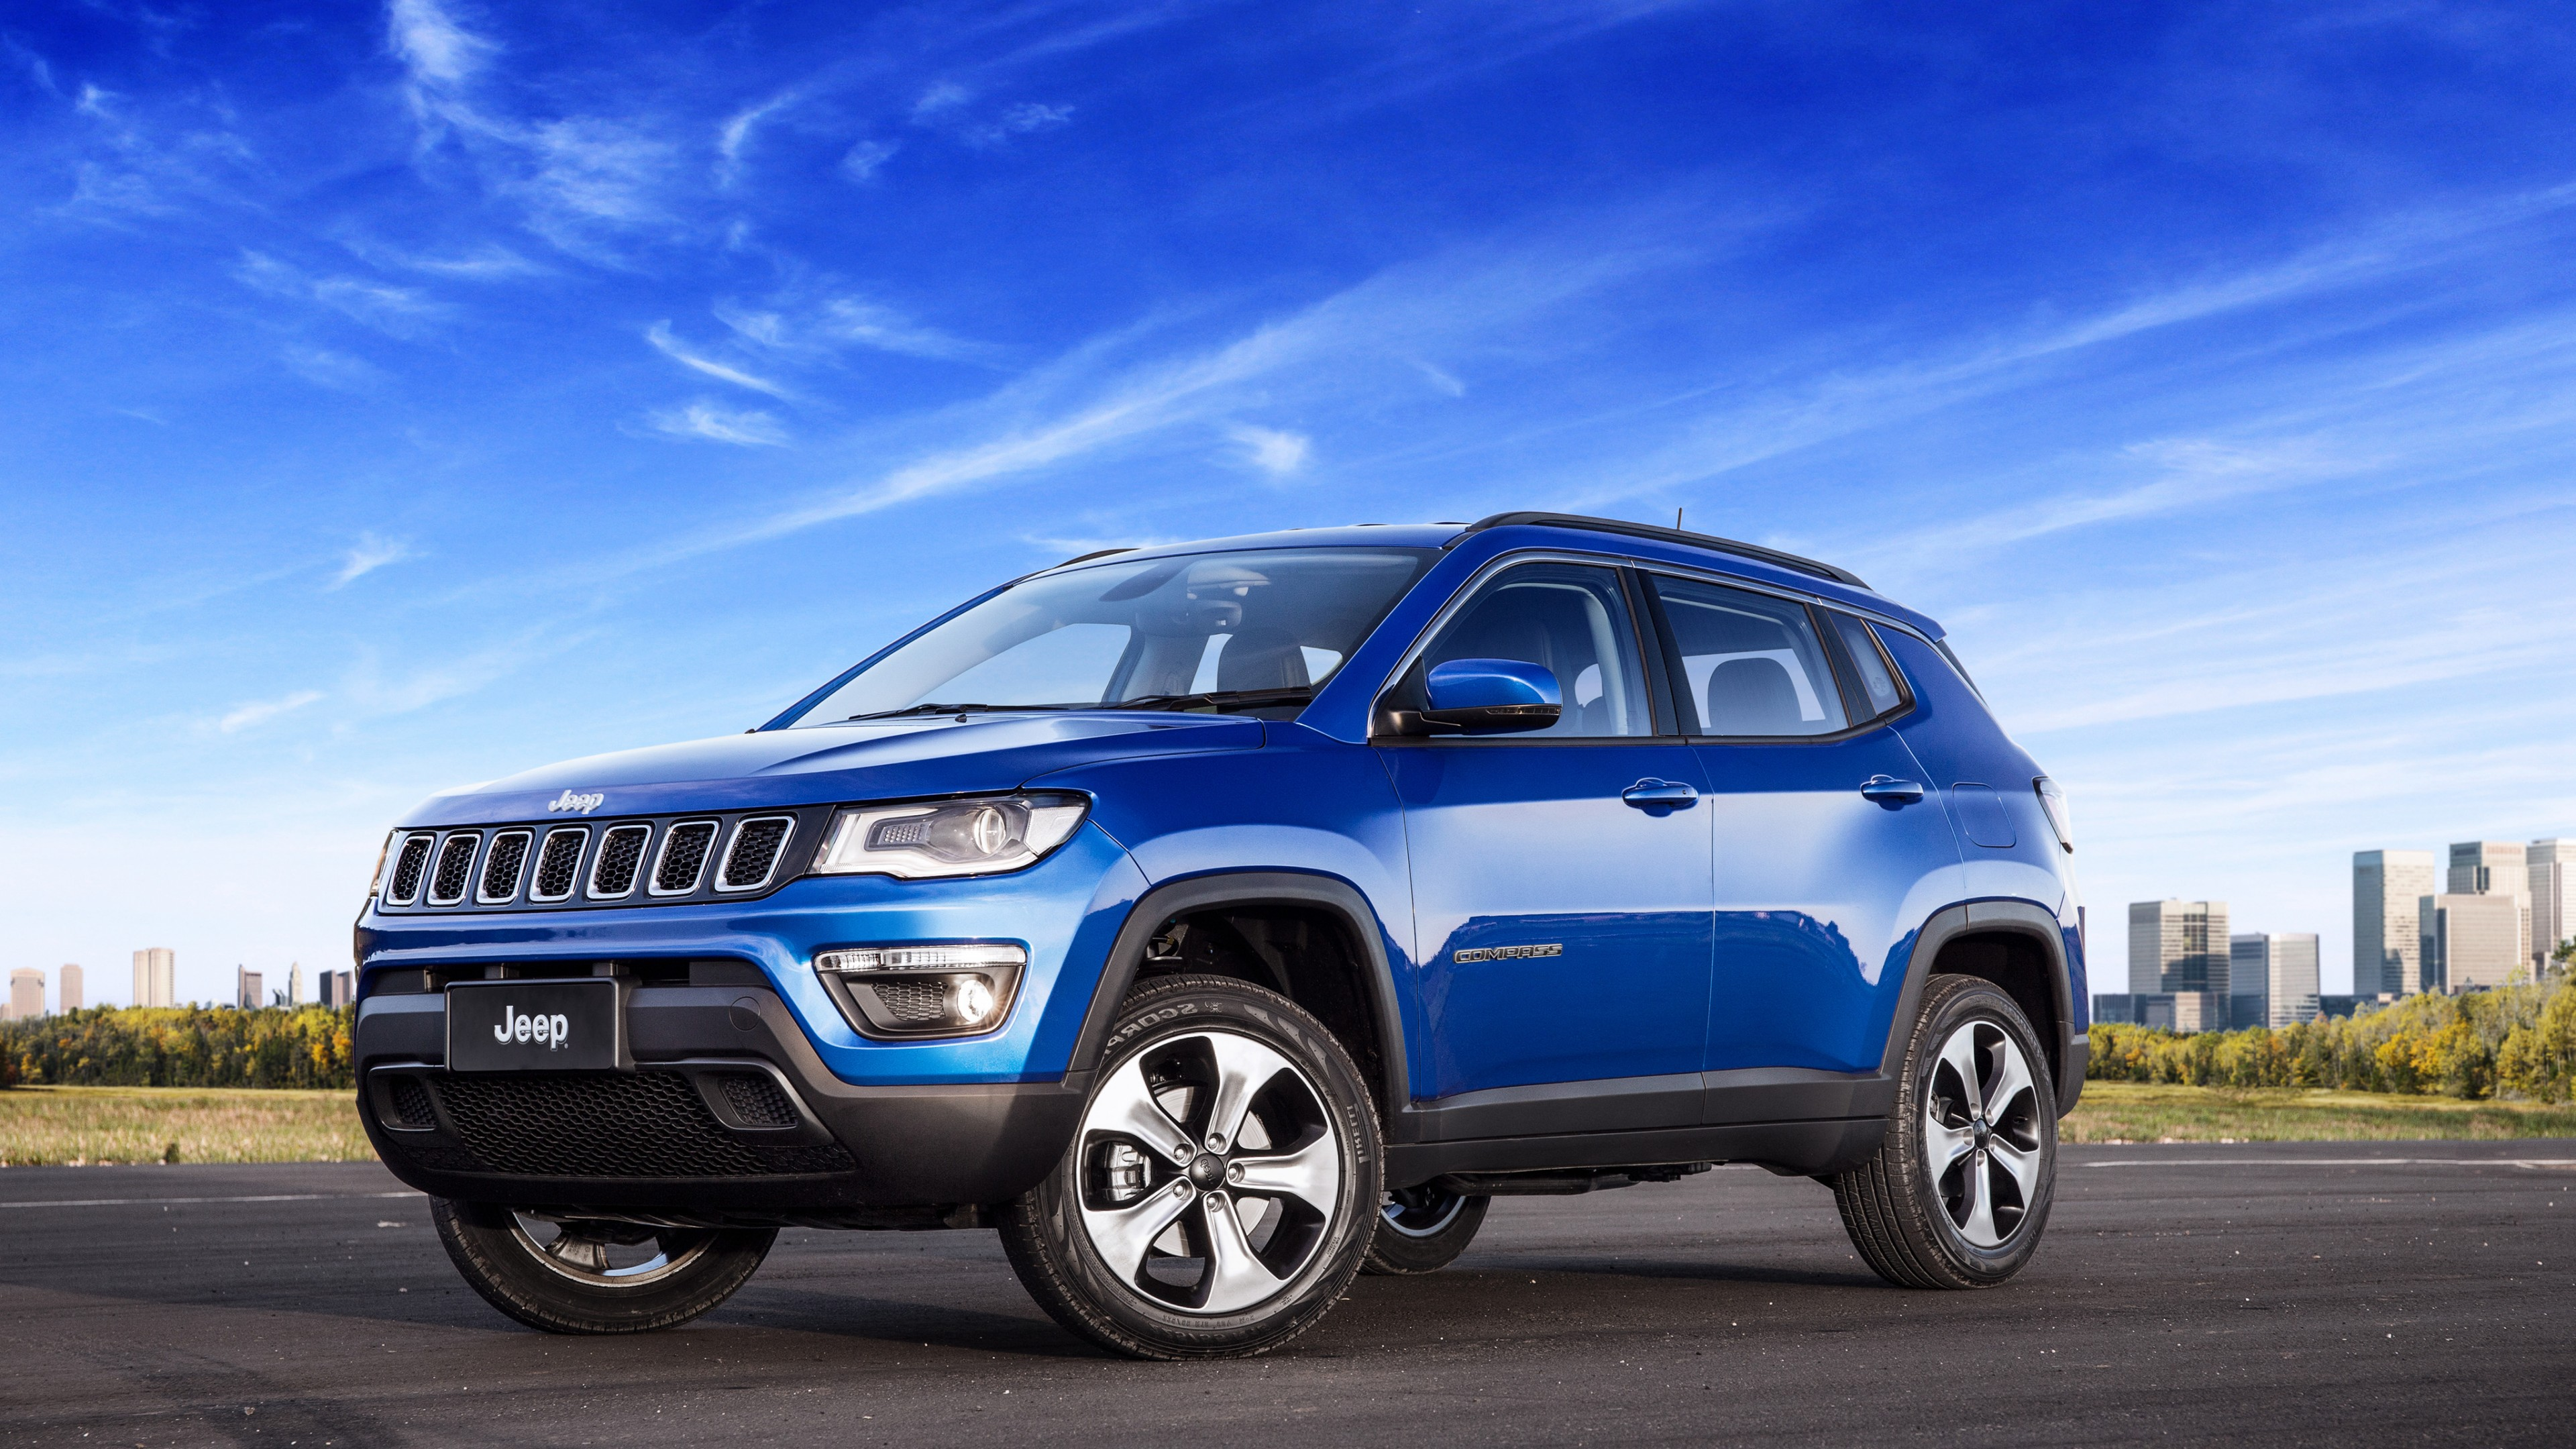 Wallpaper Jeep Compass longitude, suv, blue, Cars & Bikes ...